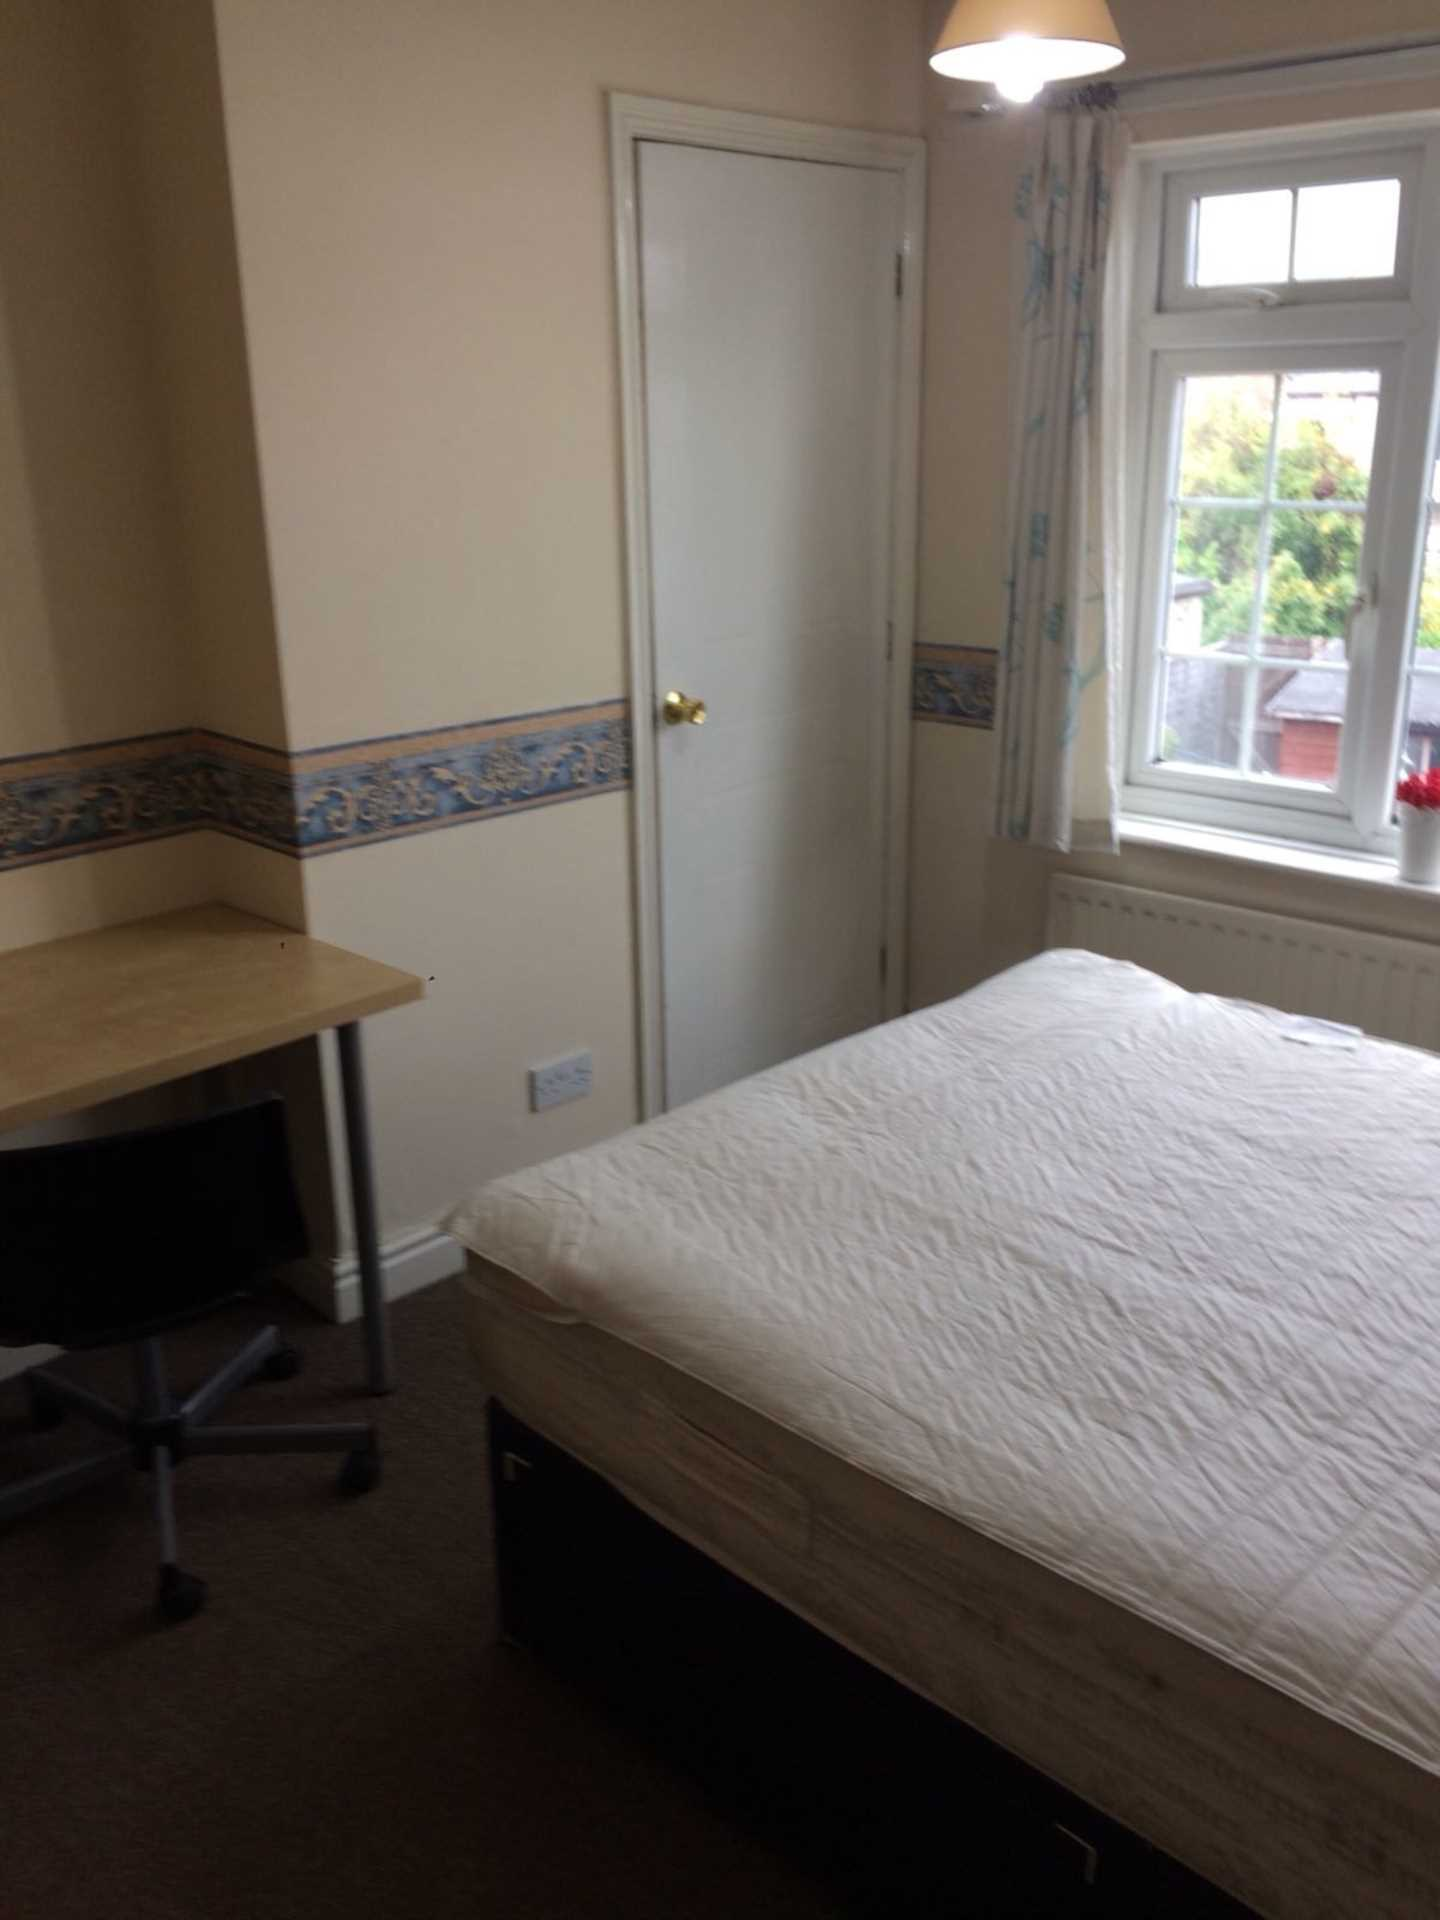 Room 2, Queensland Avenue - 5 bedroom 2 bathroom student home fully furnished, WIFI & bills included - NO FEES, Image 8